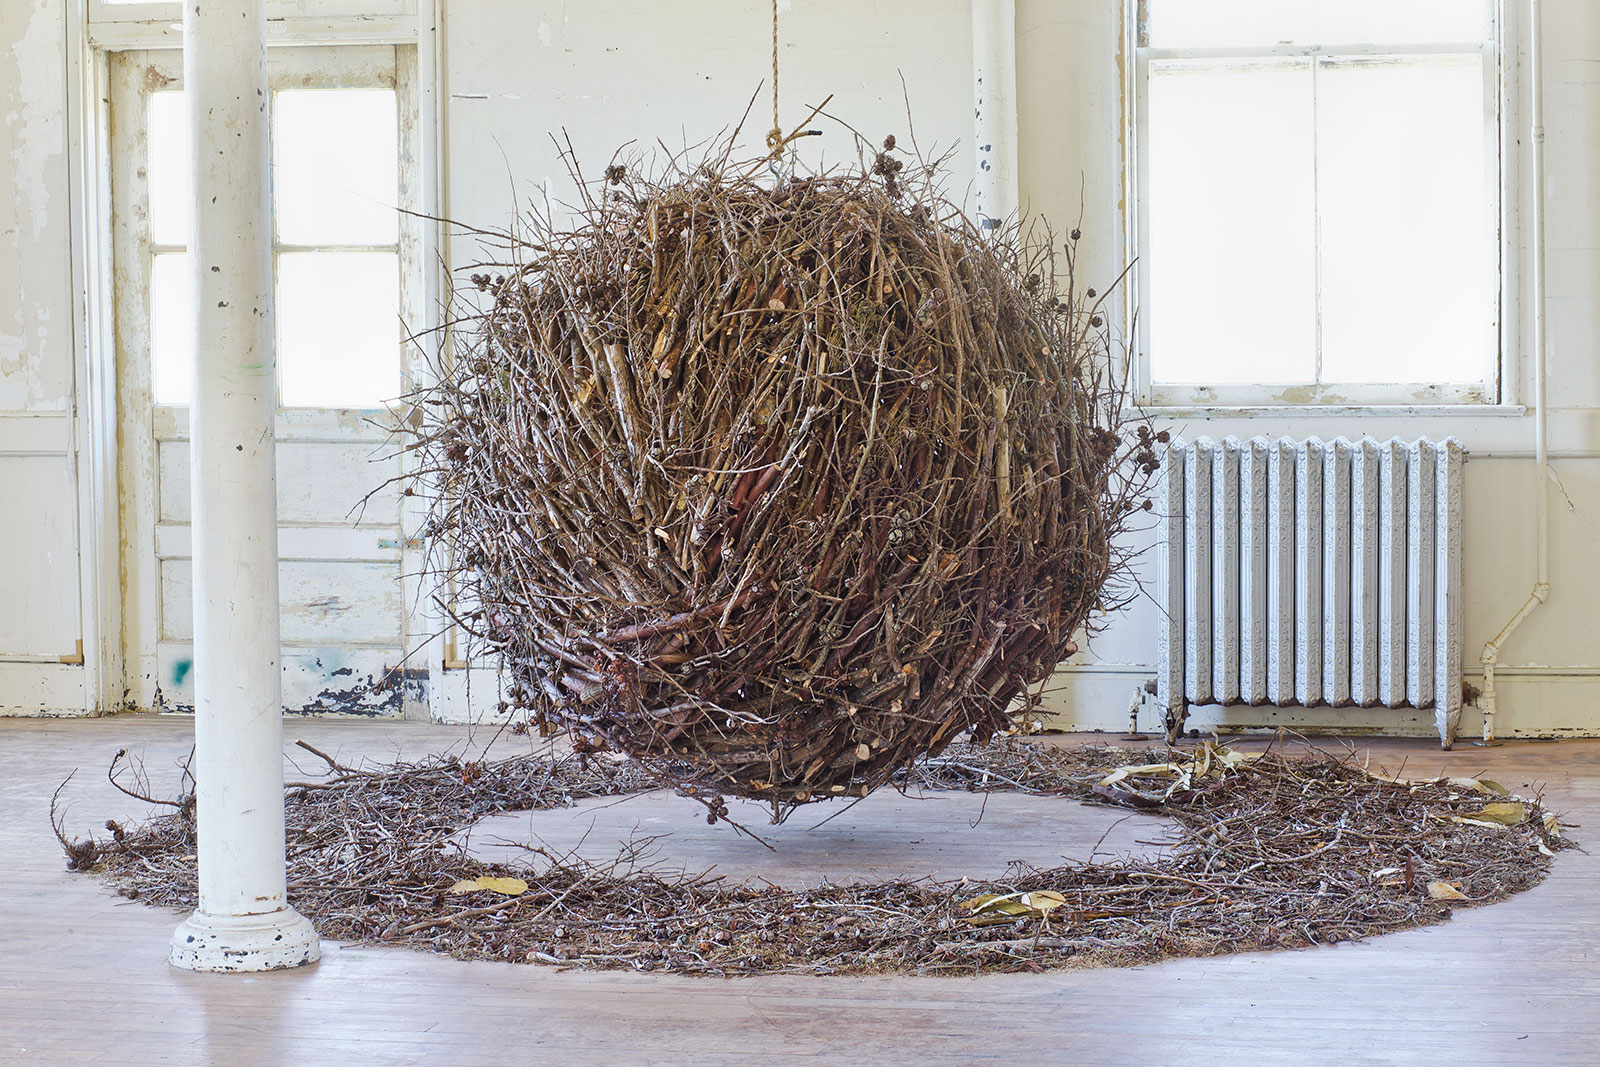 suspended ball of sticks